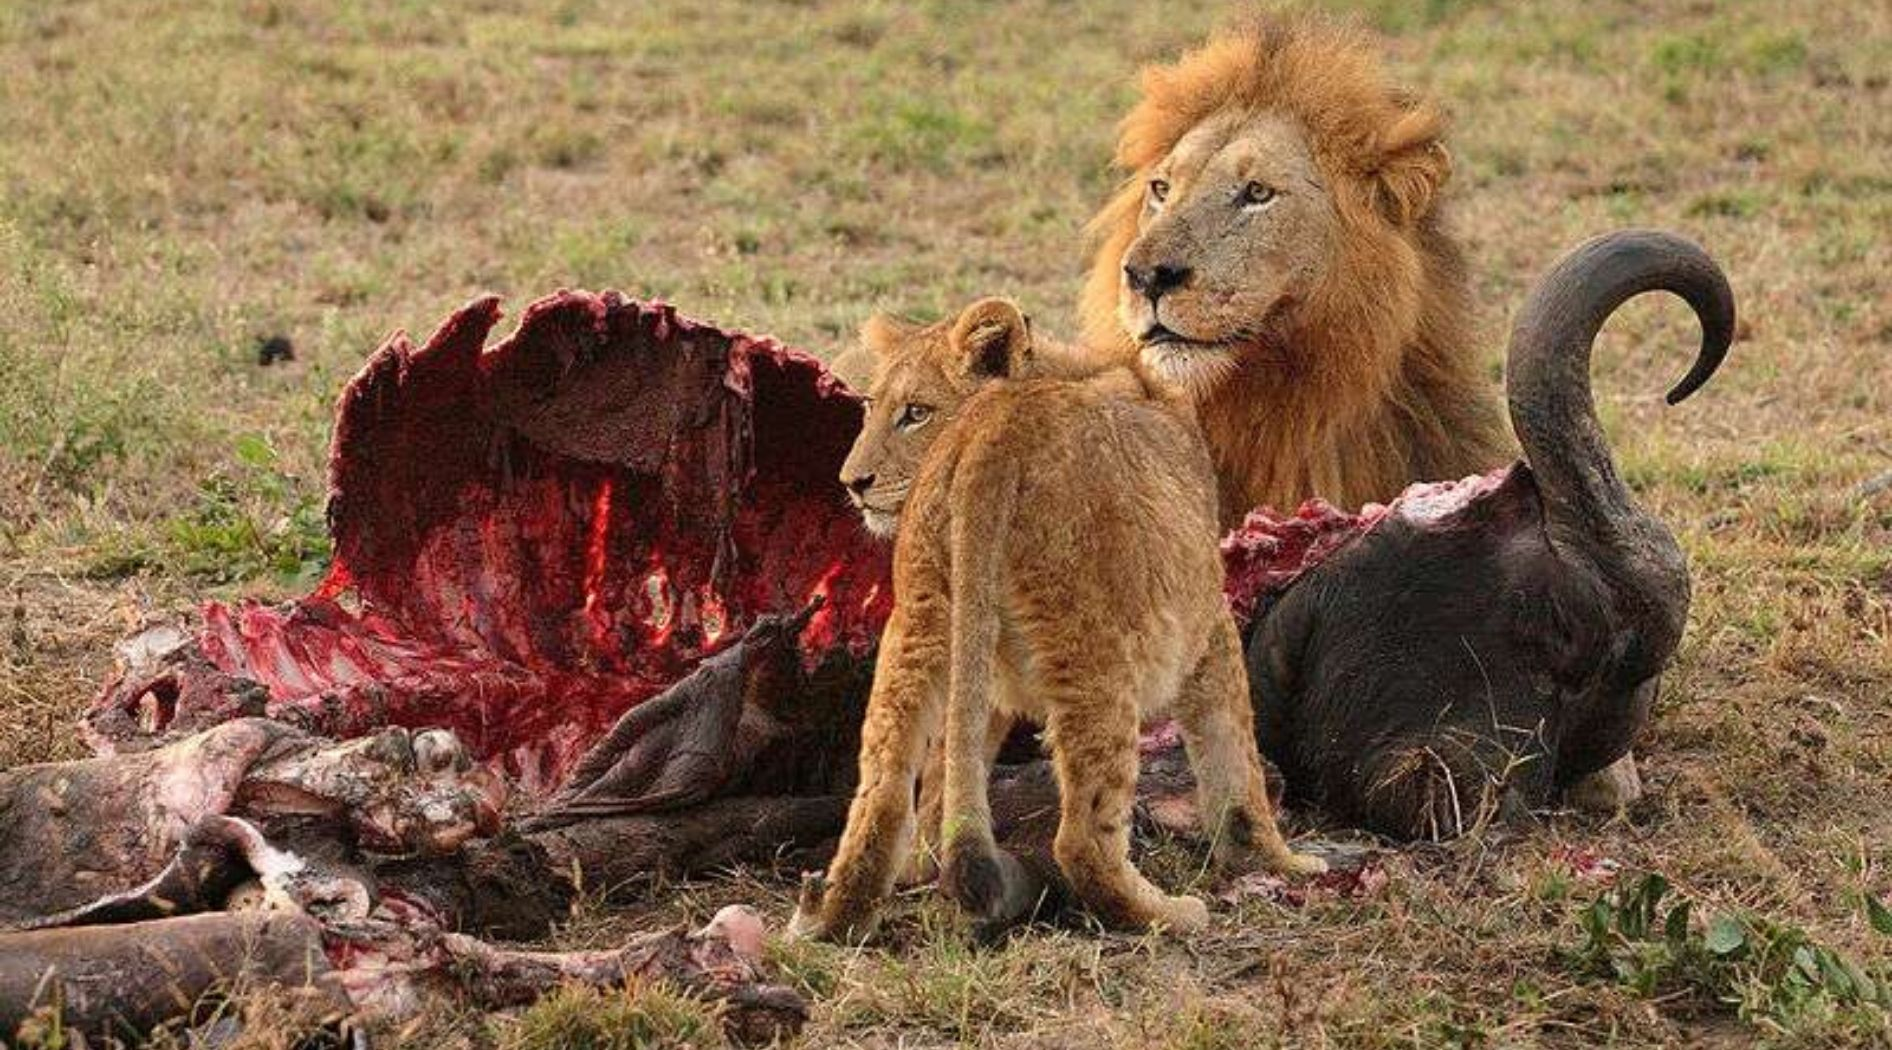 Lion and cub with their prey.